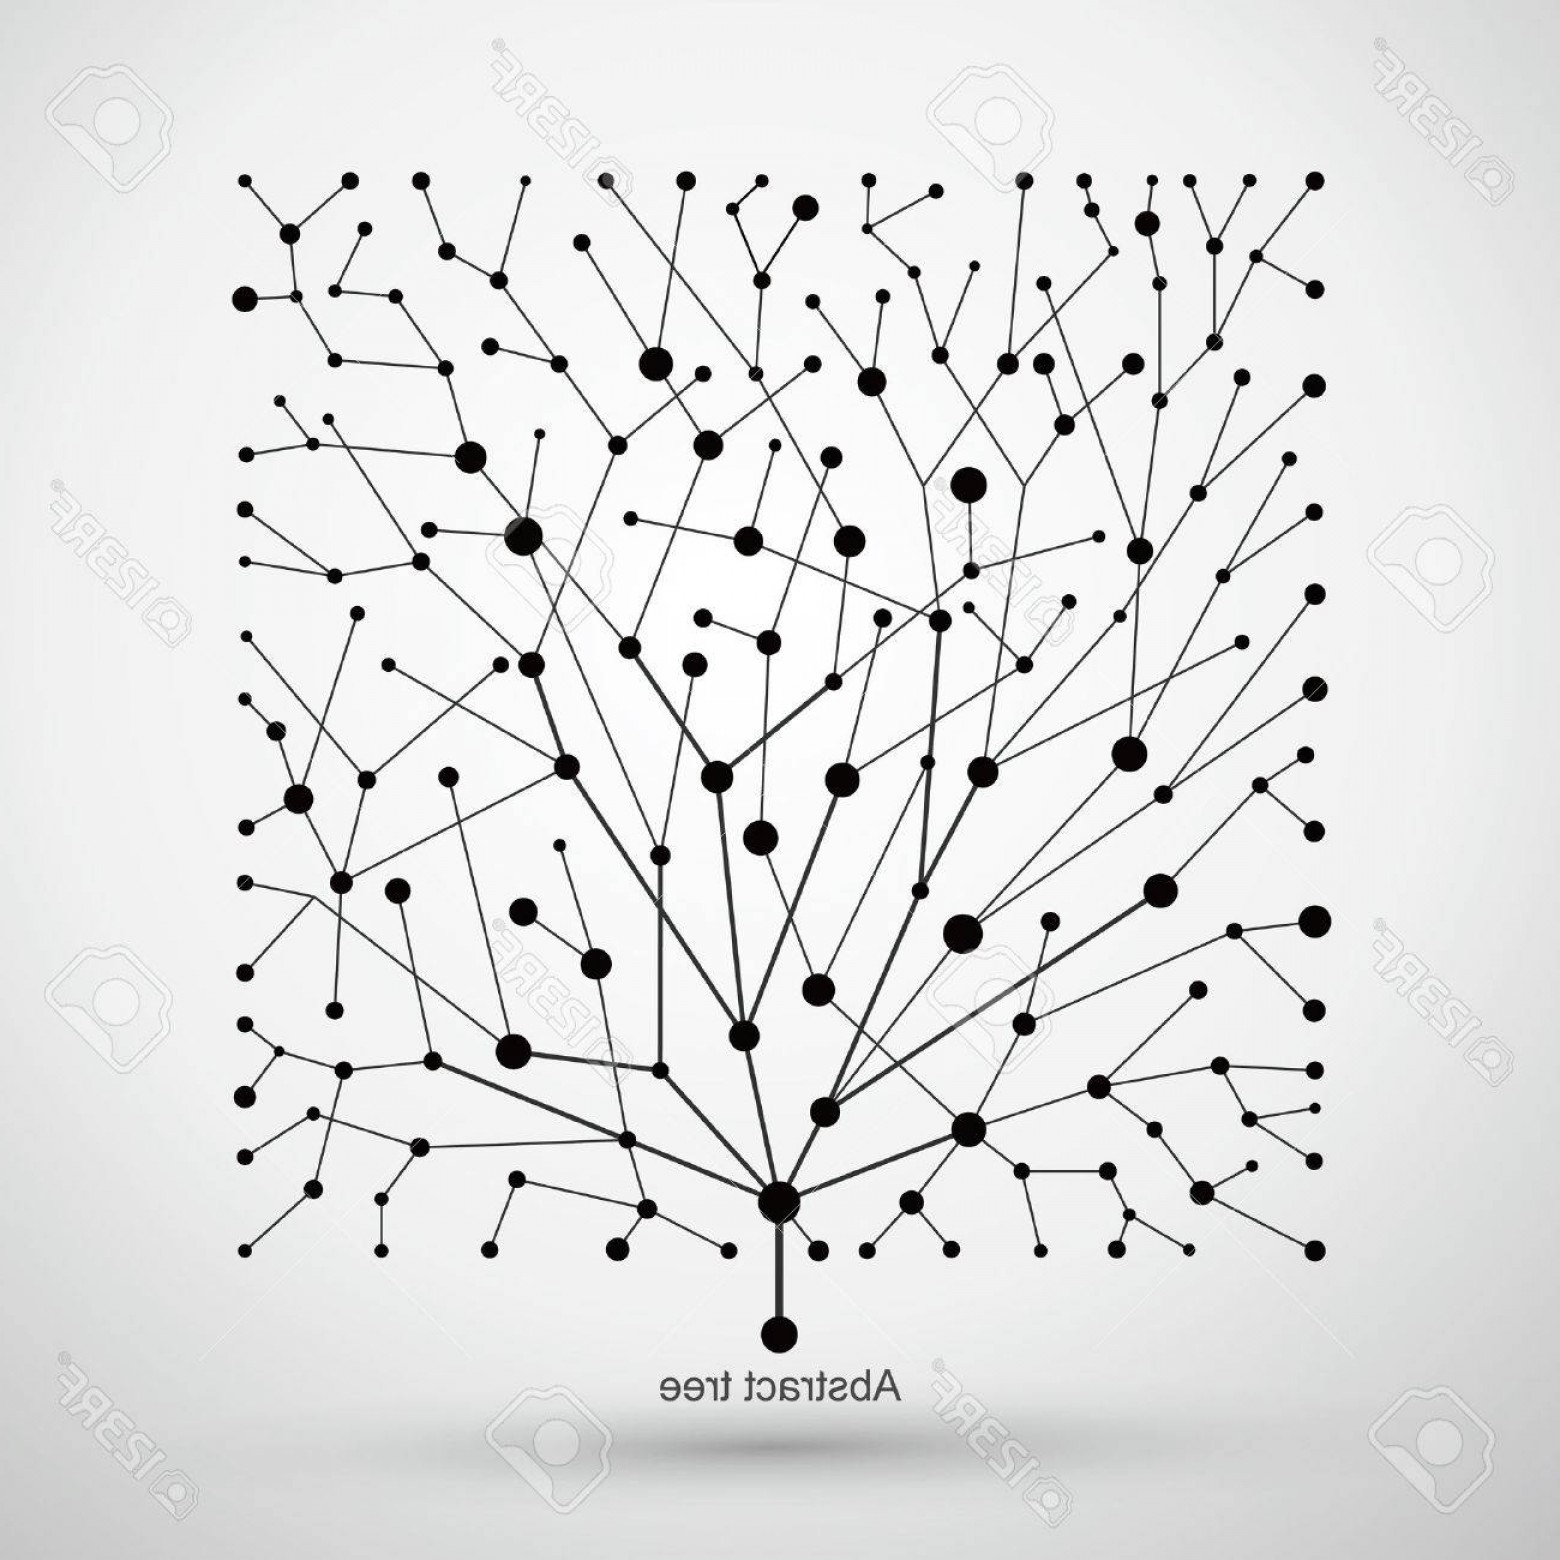 Tree Abstract Line Art And Vector: Photostock Vector Of Points And Lines Of Trees Abstract Graphics